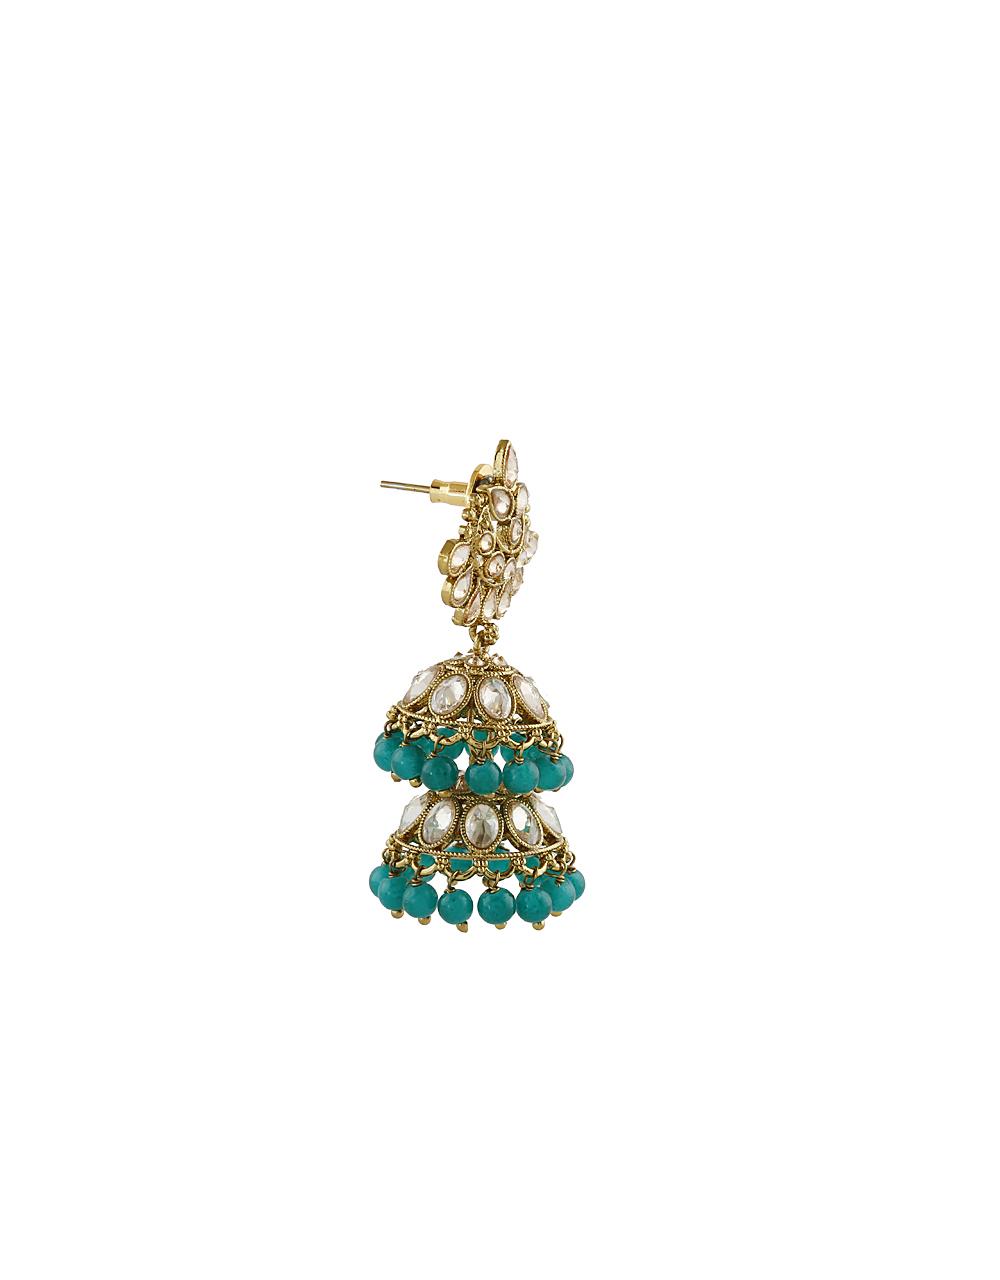 Exclusive Collection Of Green Colour Jhumki Earrings By Anuradha Art Jewellery.